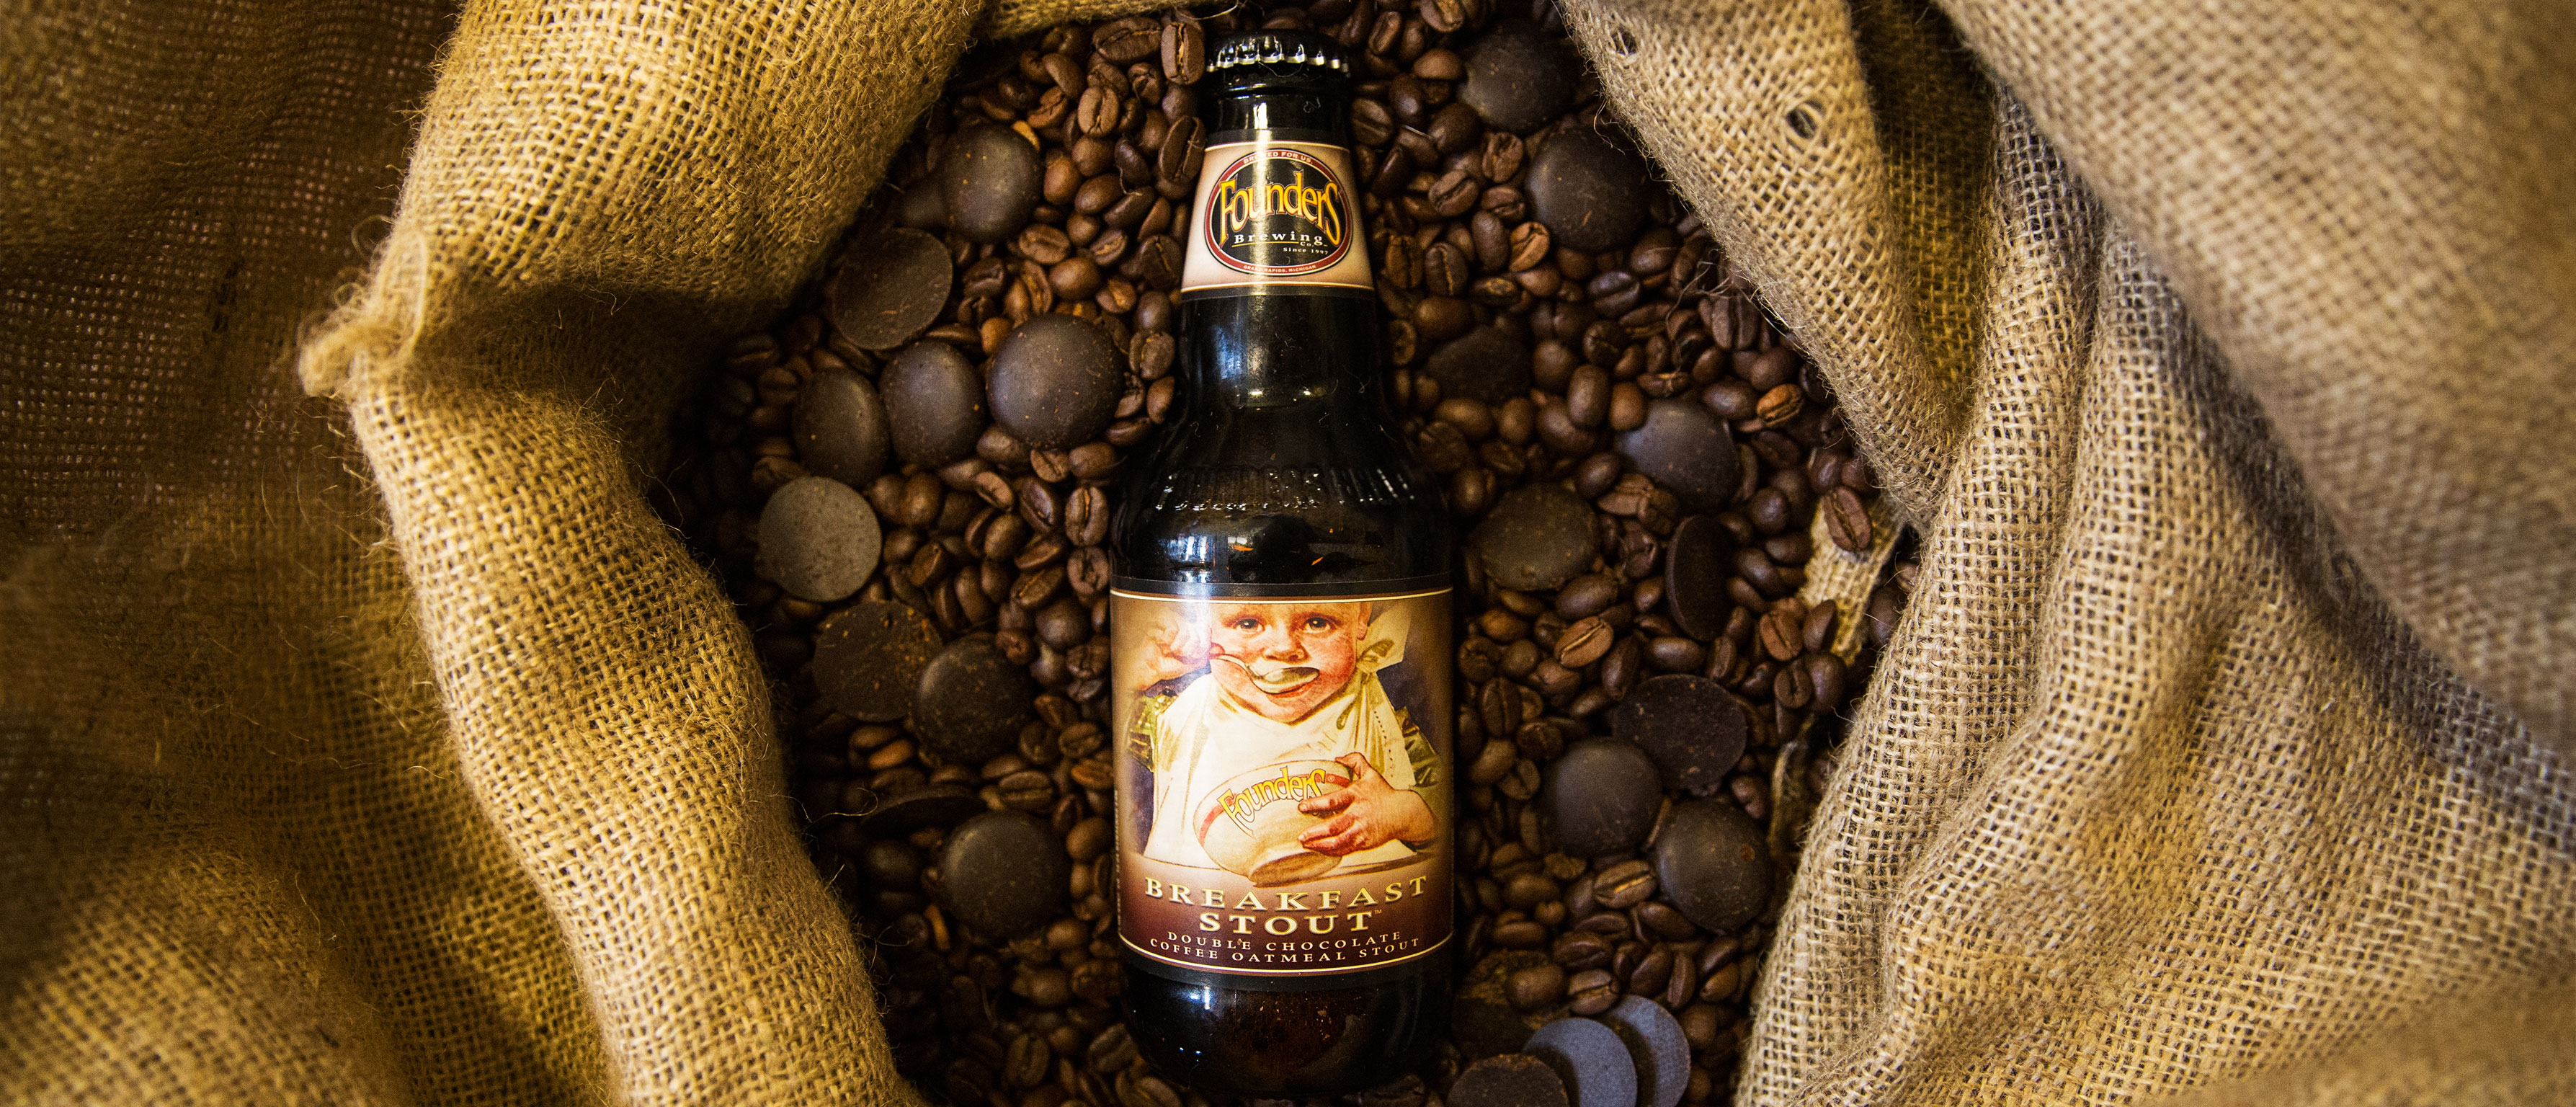 Founder's Breakfast Stout bottle surrounded by chocolates and coffee beans